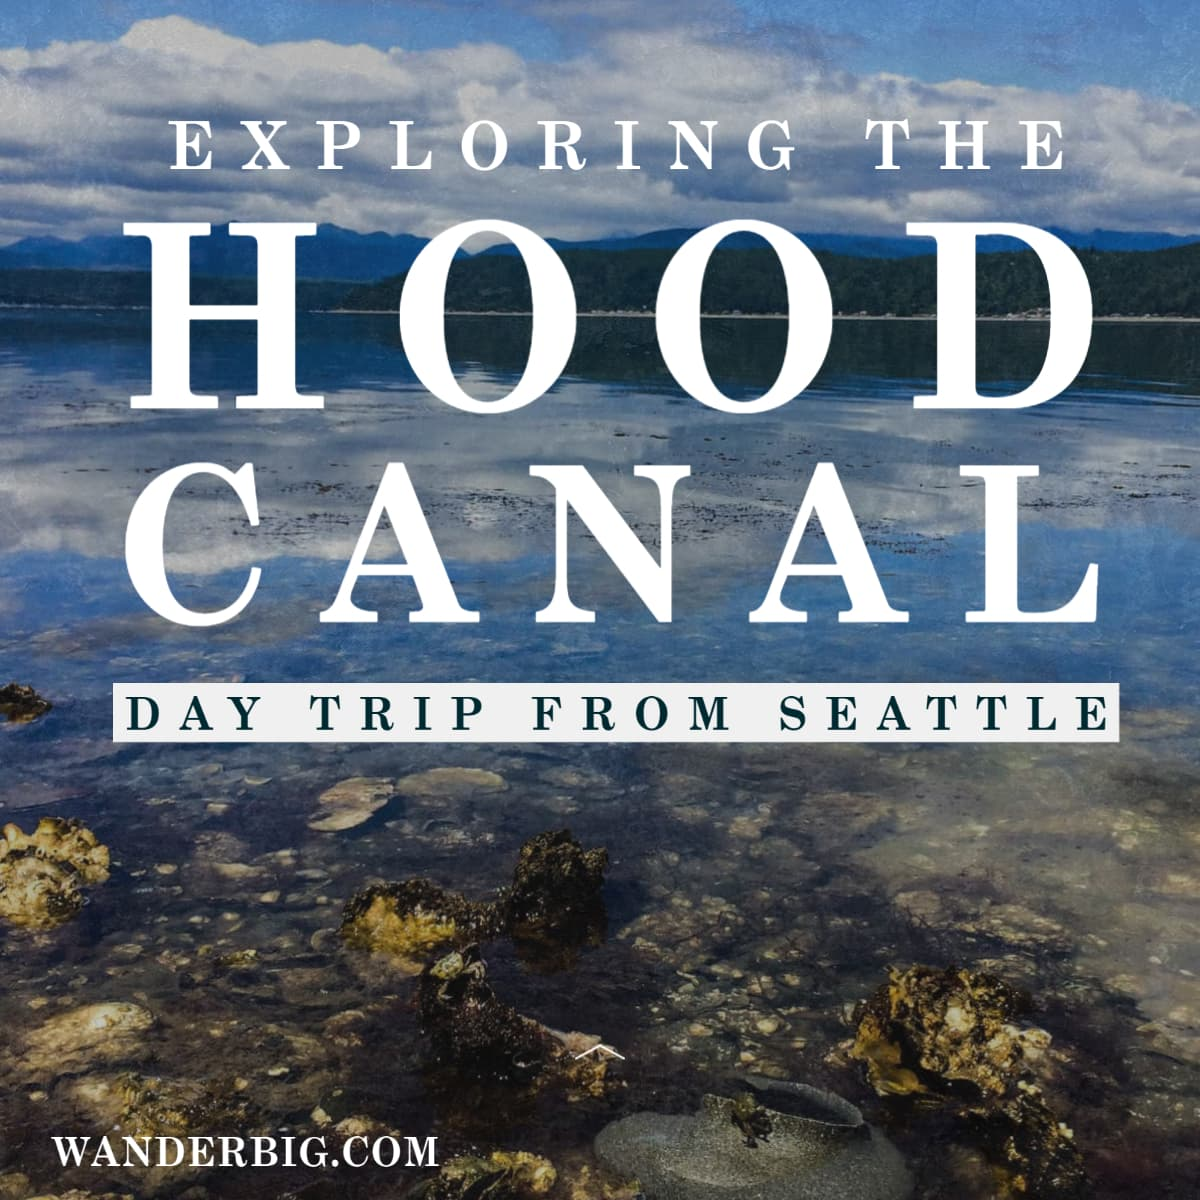 Escape to the calm of the Hood Canal, only a little over an hour from downtown Seattle. With this itinerary for a Hood Canal day trip you can explore the food, wildlife, and landscape of the Hood Canal while ending your day with a mini vacation and fire pit at my favorite resort.